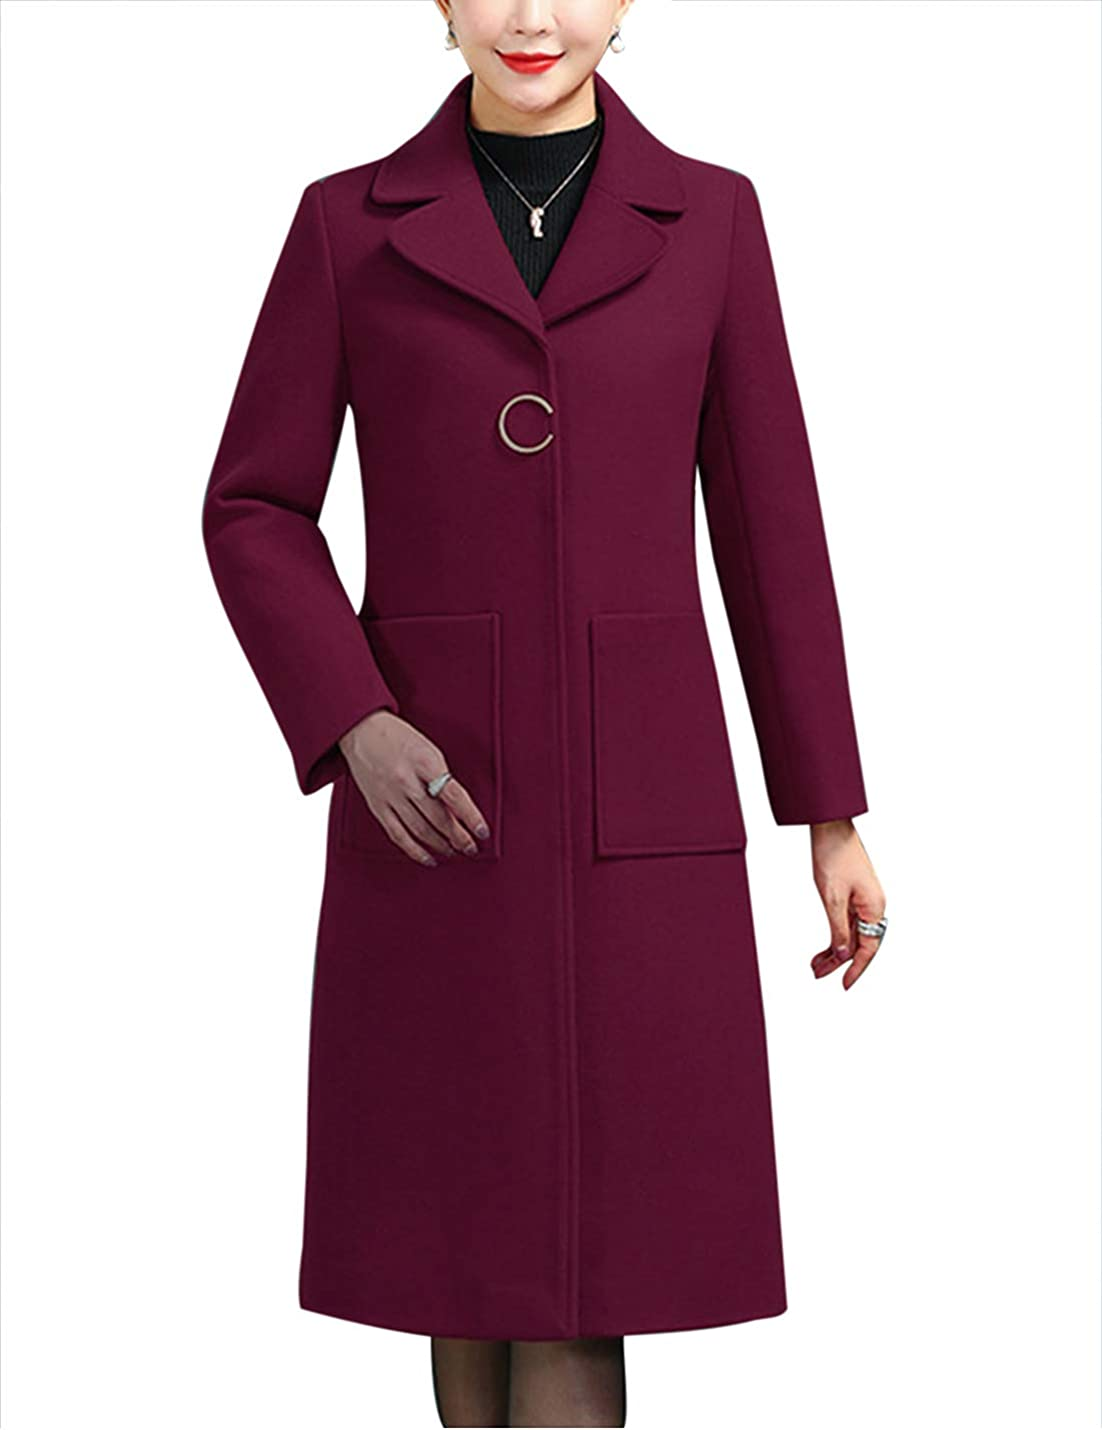 Uaneo Womens Slim Fit Faux Fur Collar Button Up Wool Blended Mid Long Coat Jackets(WineRed-M)